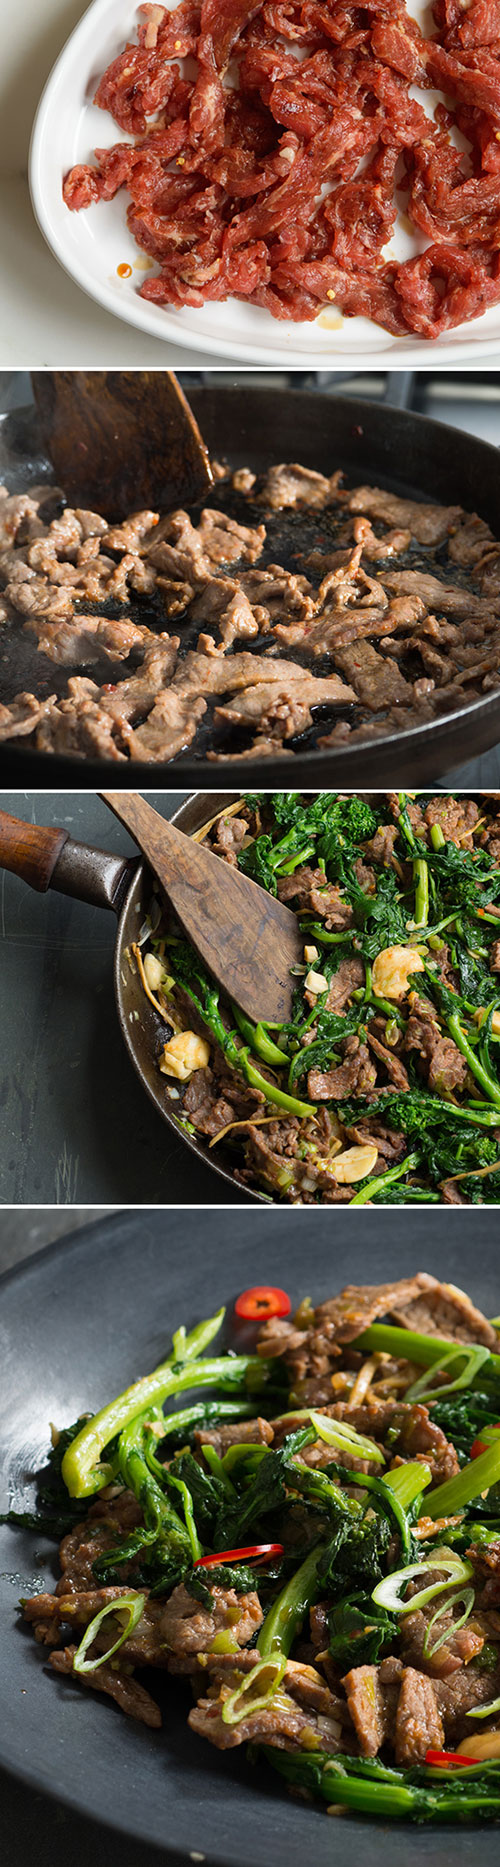 Beef and broccoli rabe quick fry andy boy ab pinterest quickfry forumfinder Choice Image